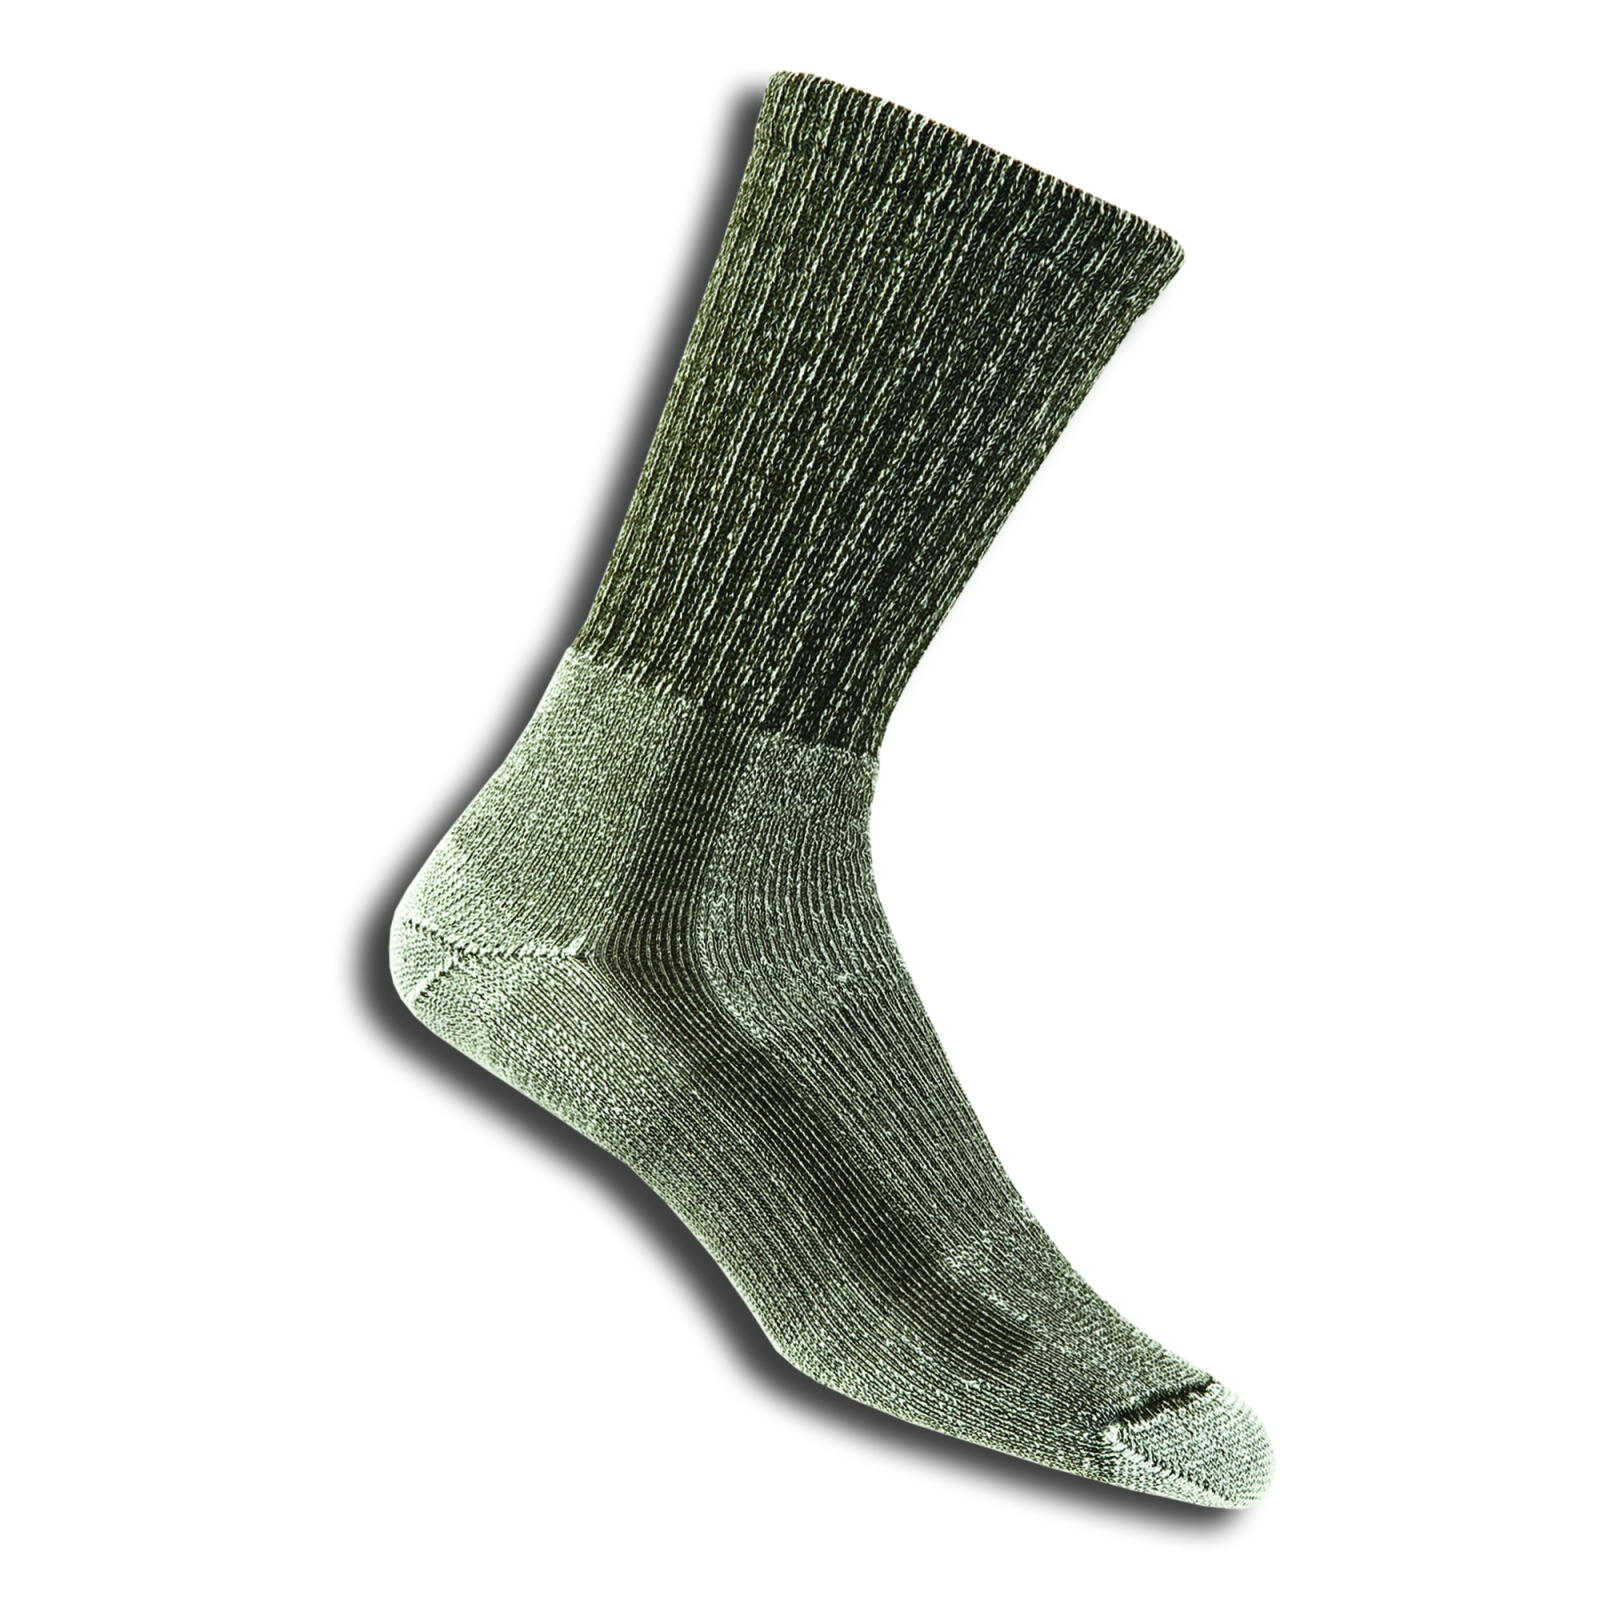 Thorlos Light Hiking Socks - Green